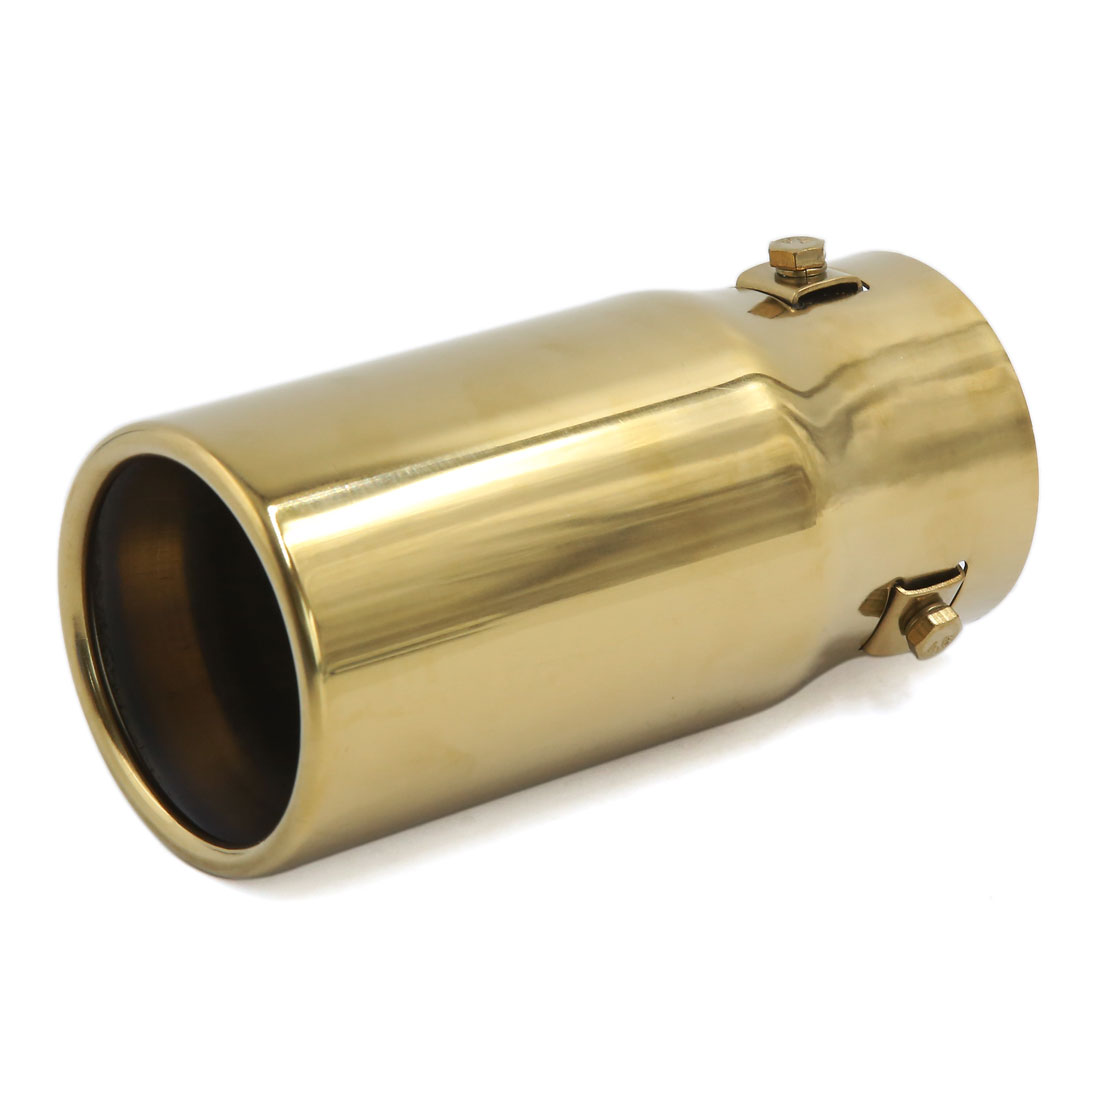 Universal Car Gold Tone Round Tip Exhaust Muffler Tail Throat Pipe 66mm Inlet